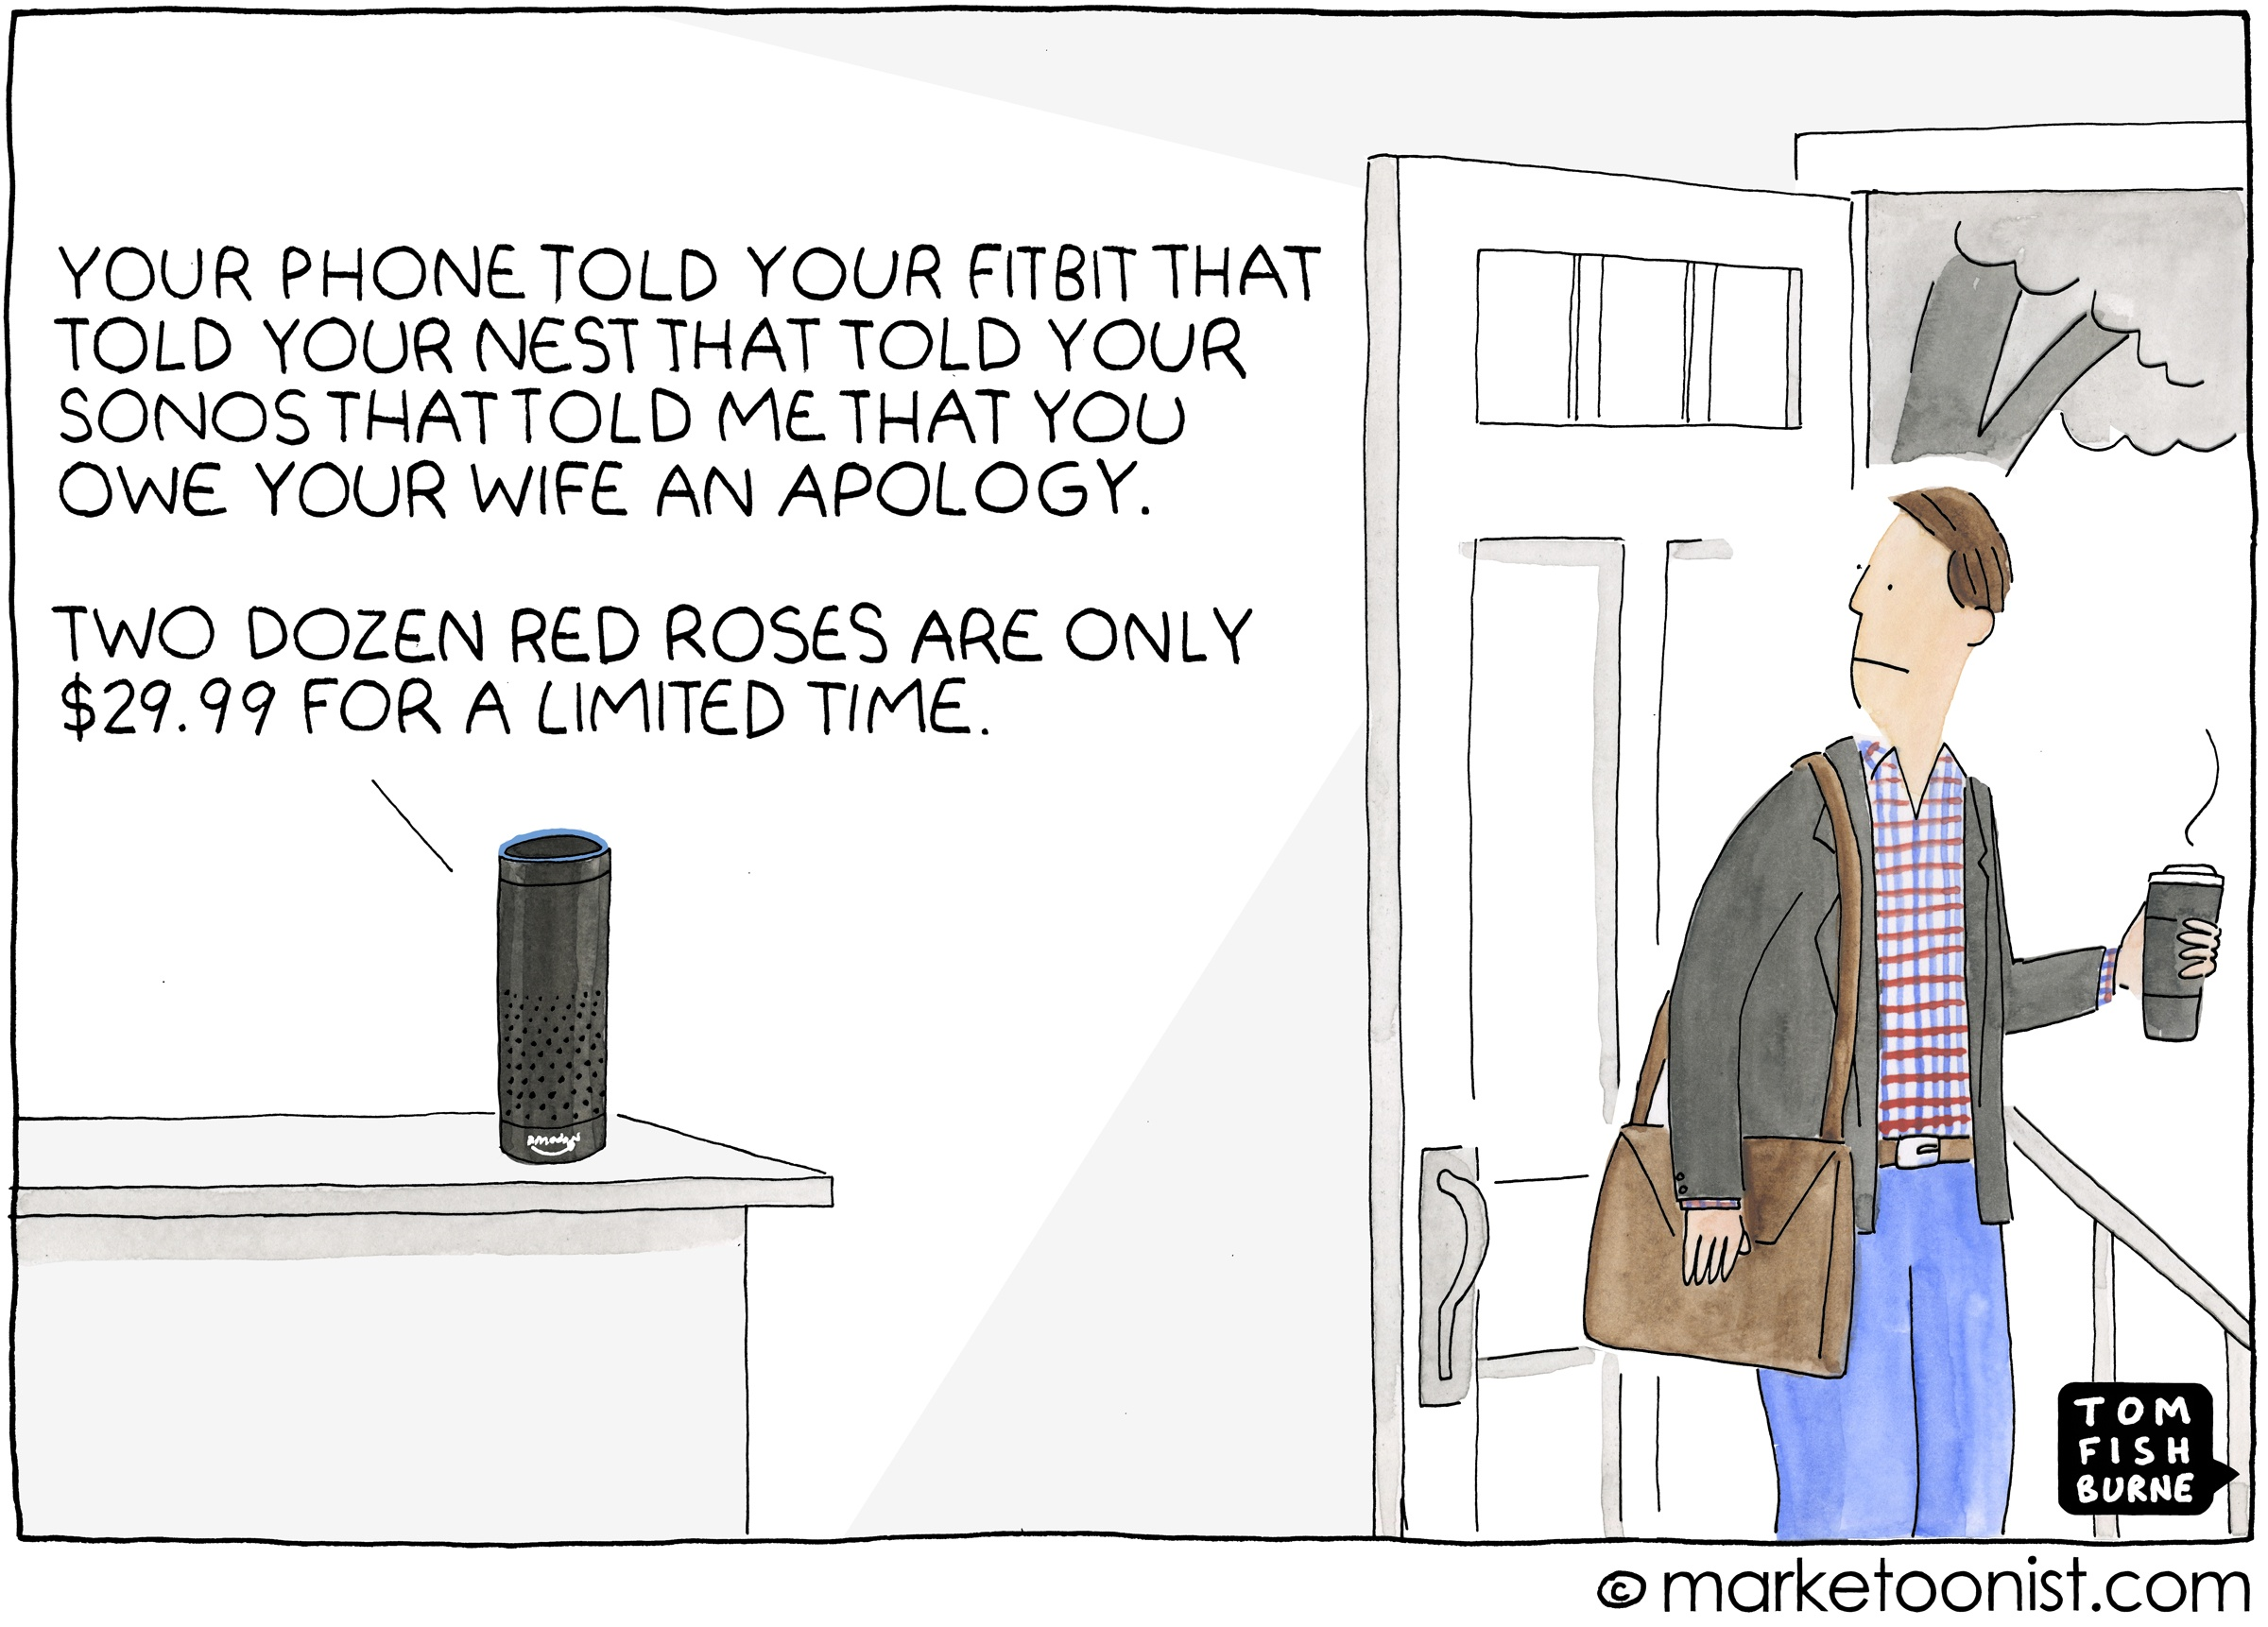 When is personalization too personal?